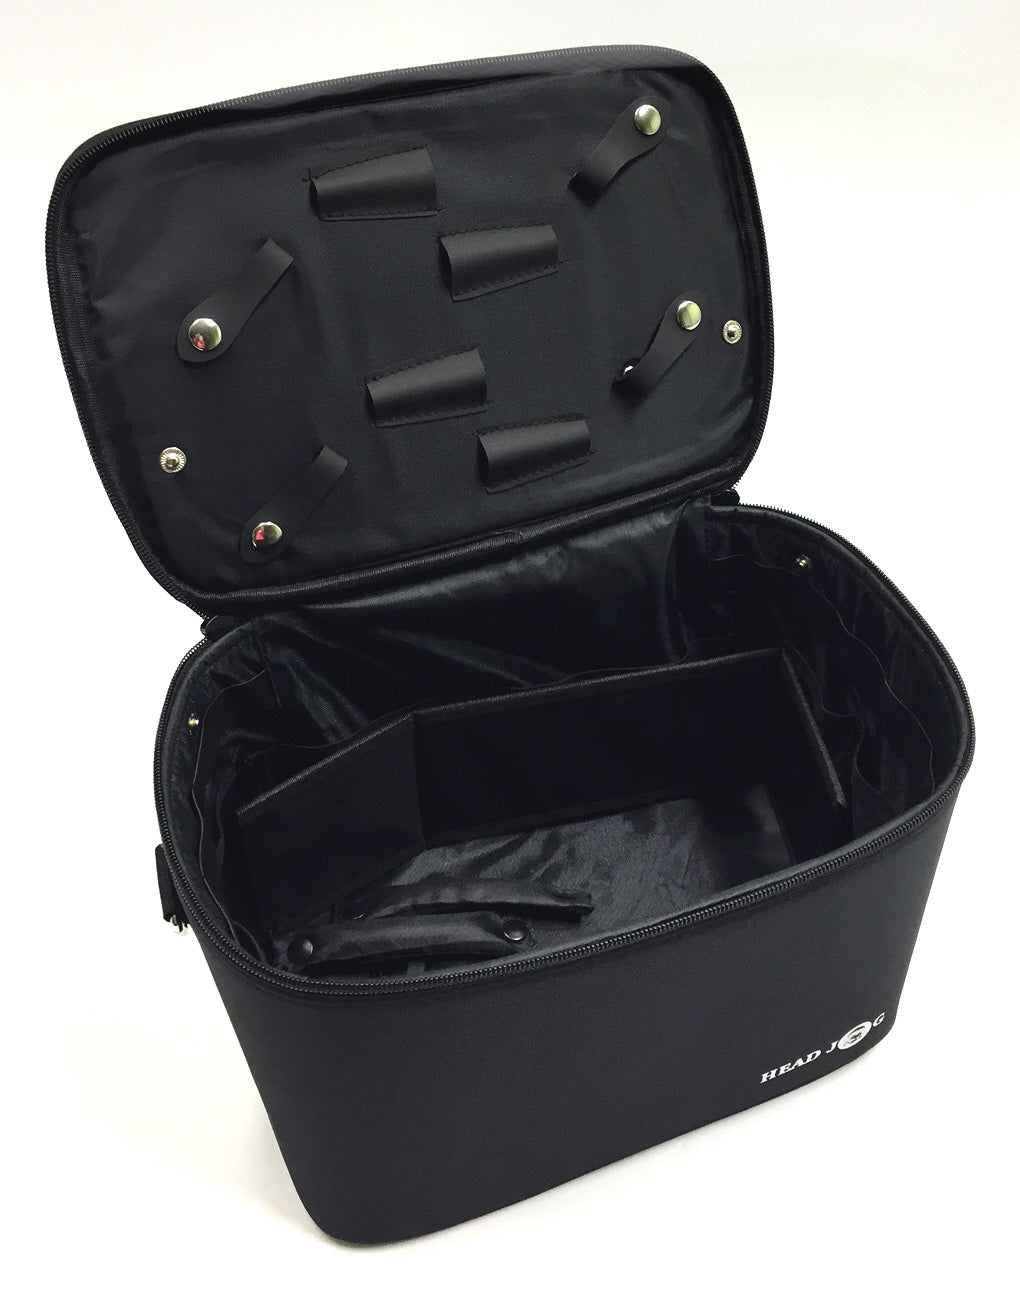 HEAD JOG Equipment Case - Small